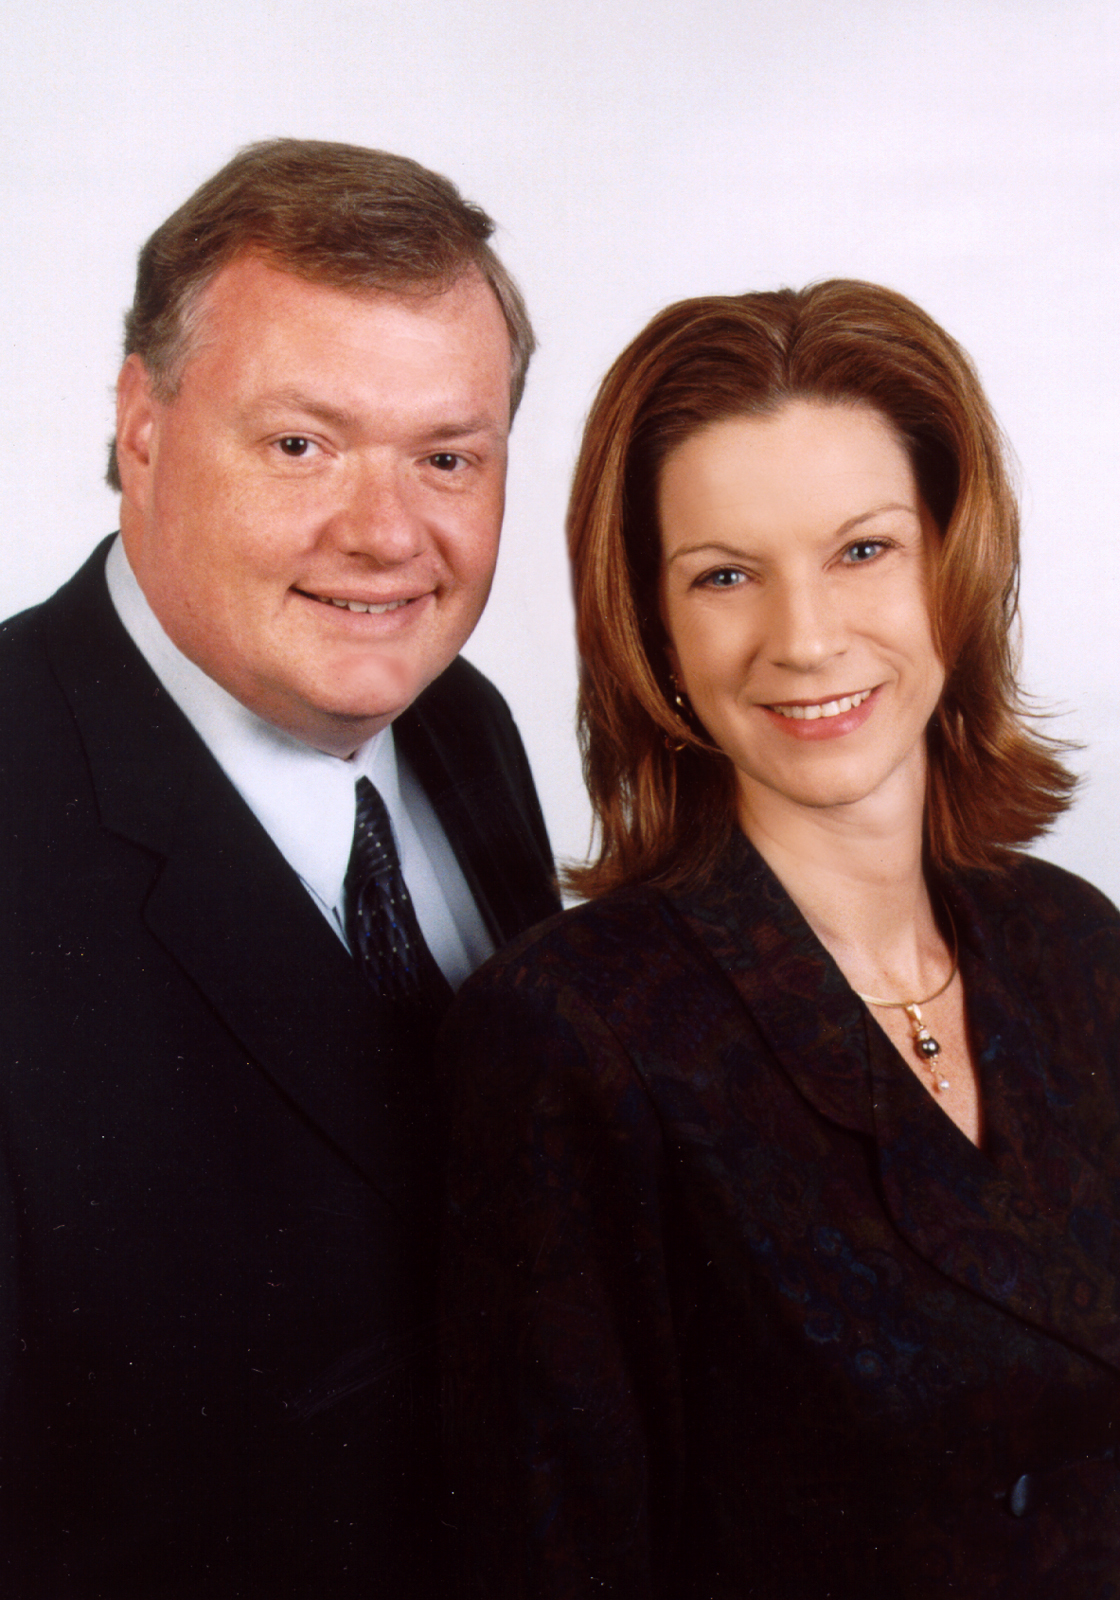 Tony & Suzanne Marriott